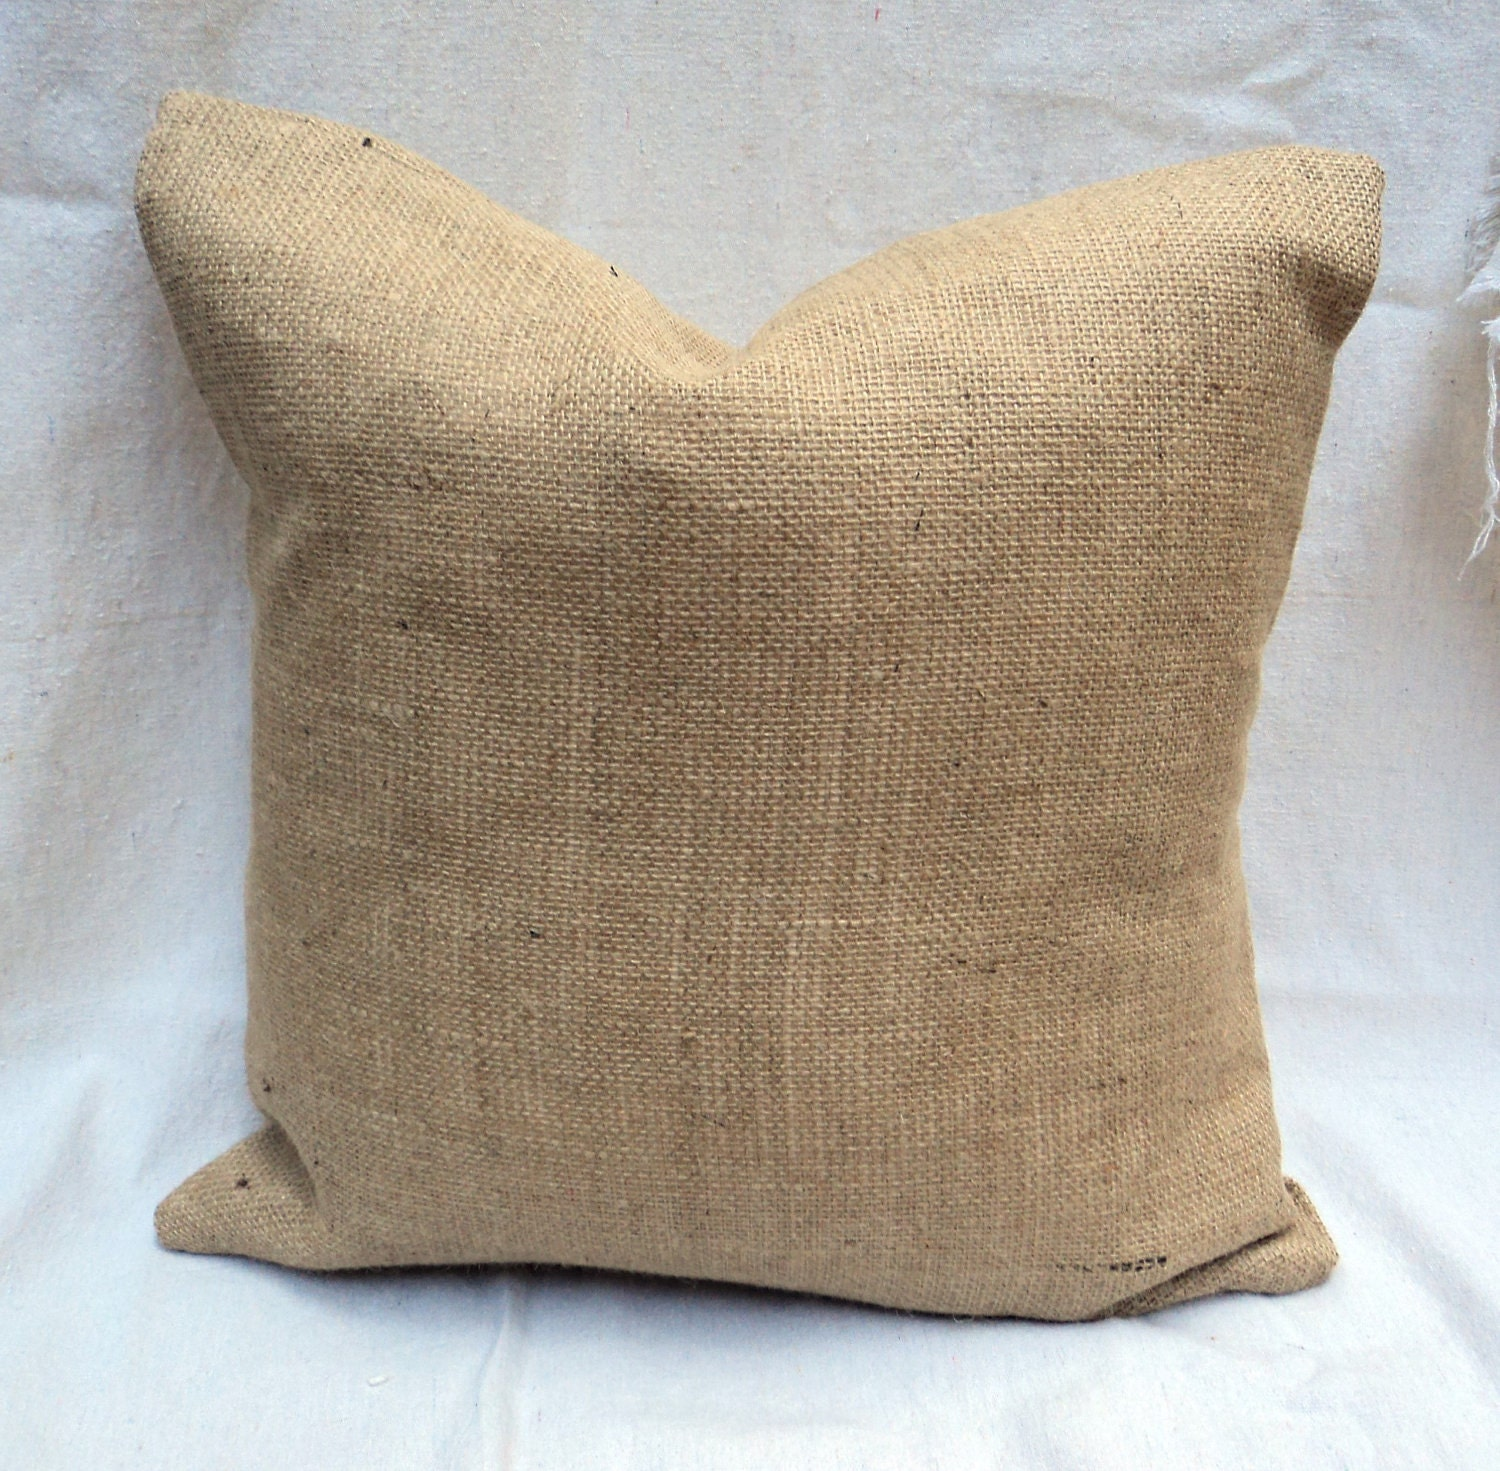 Burlap Pillow Cover Lined Burlap Pillow 16 x 16 Decorative